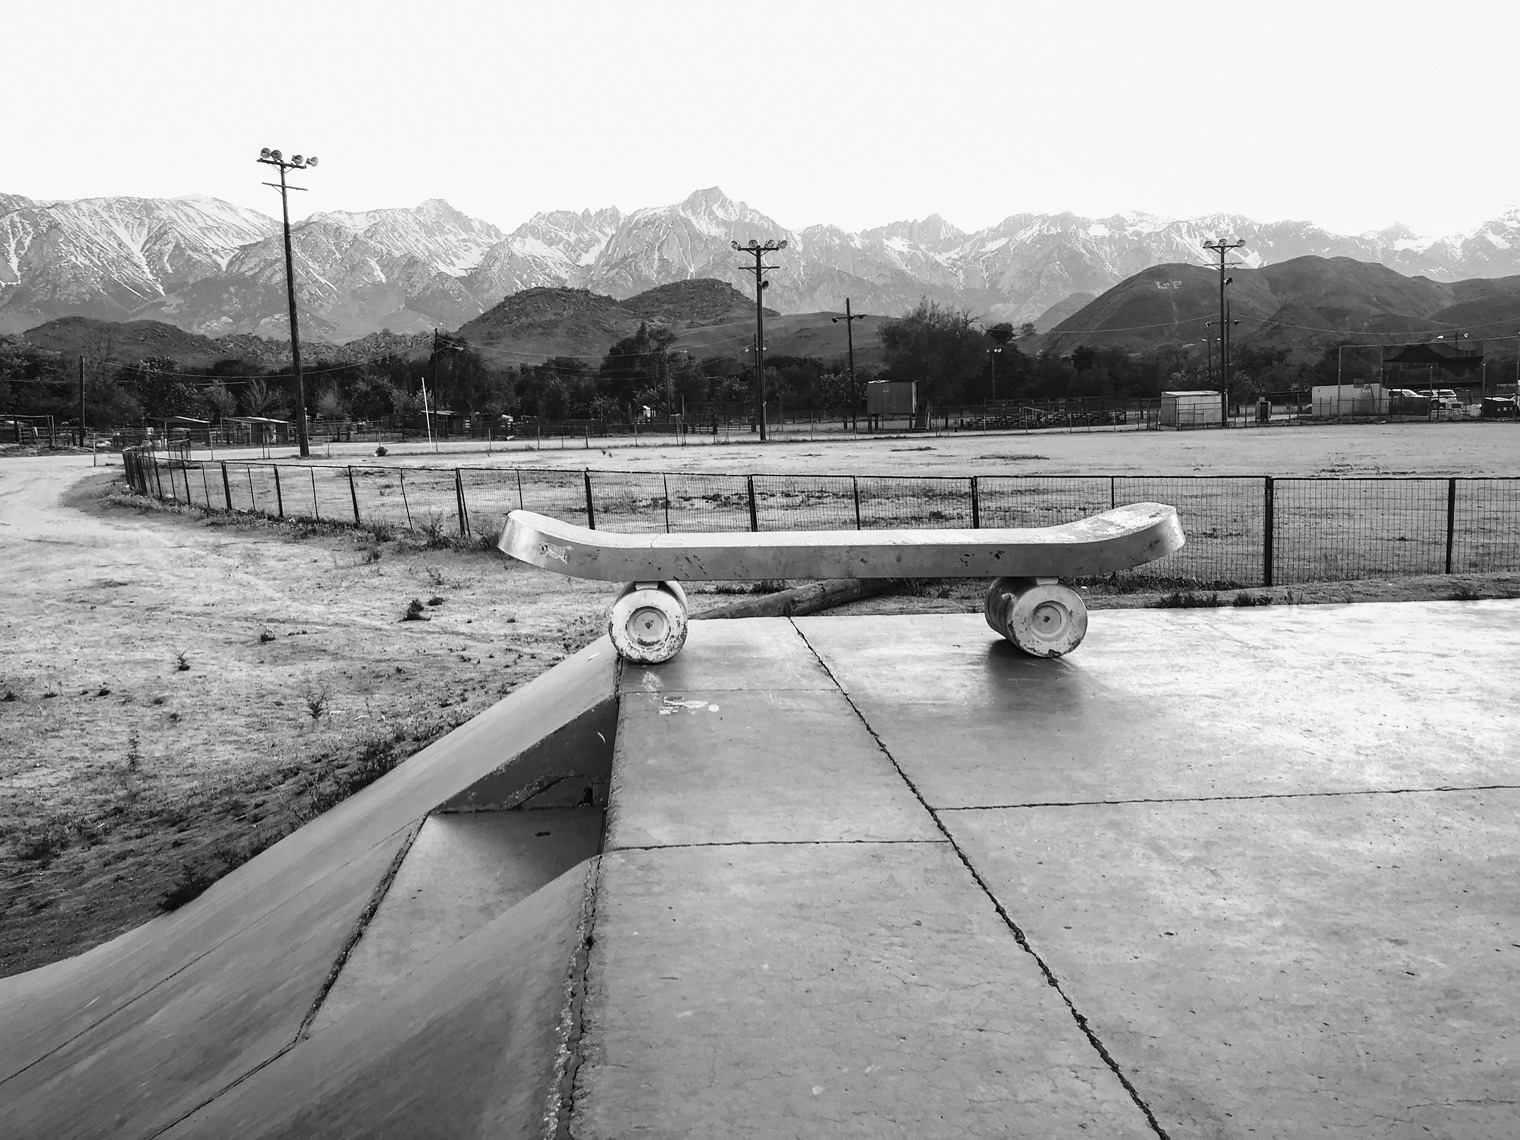 RoadTripping_SkateparkProject_Park10_Town_Retouched_Web